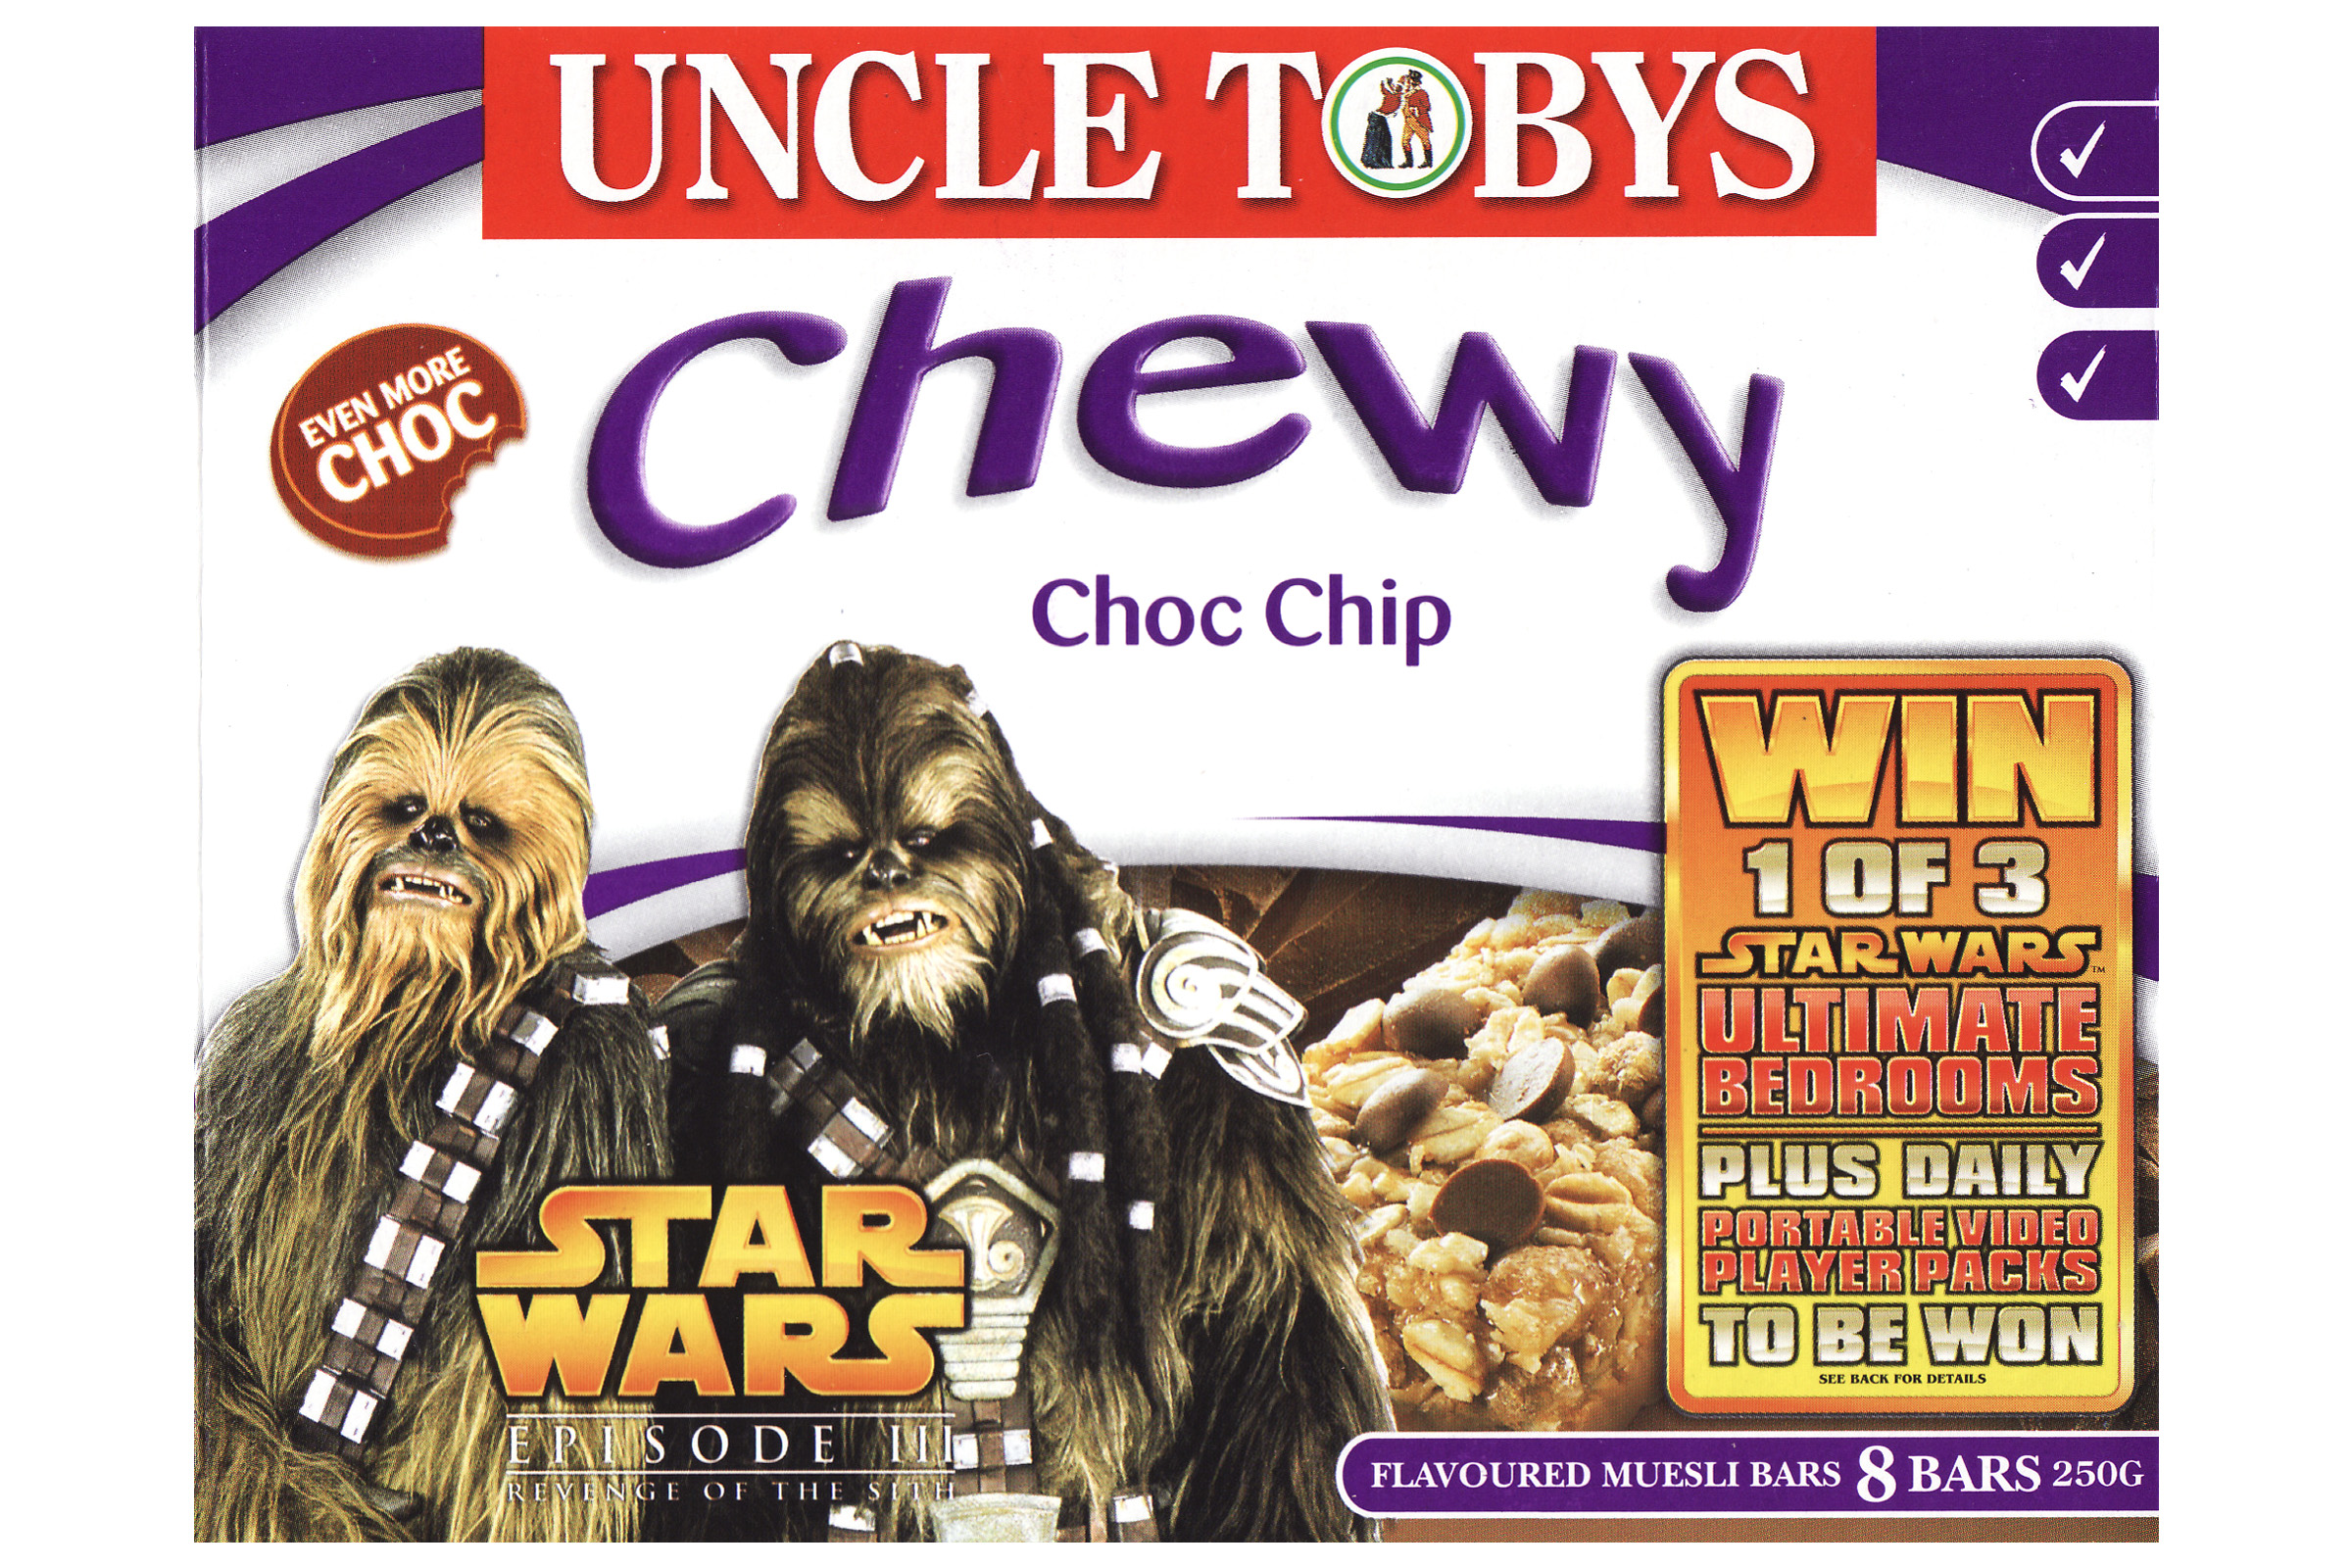 Uncle Tobys Chewy Muesli Bars - Choc Chip